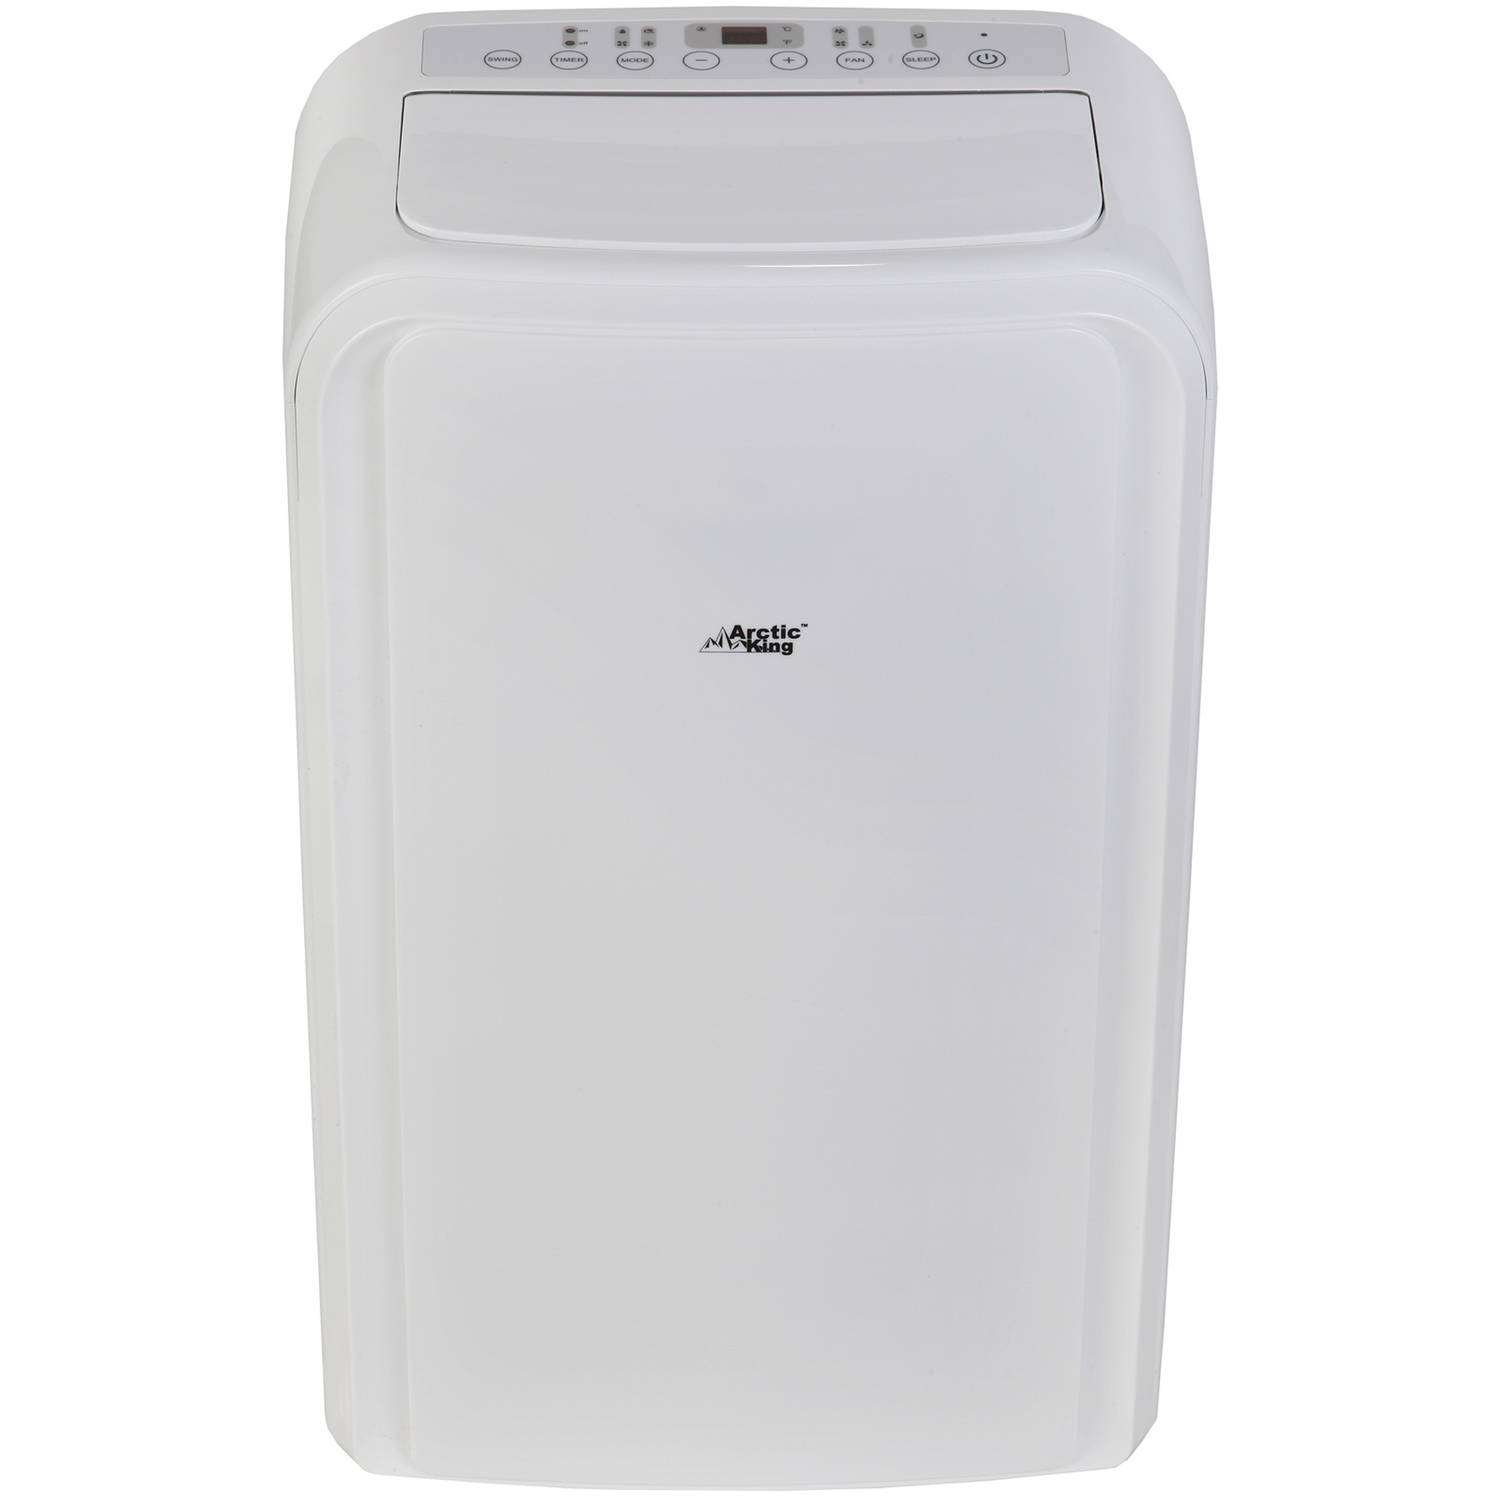 arctic king wppd12hr5 12000btu remote control portable air conditioner with heat pump